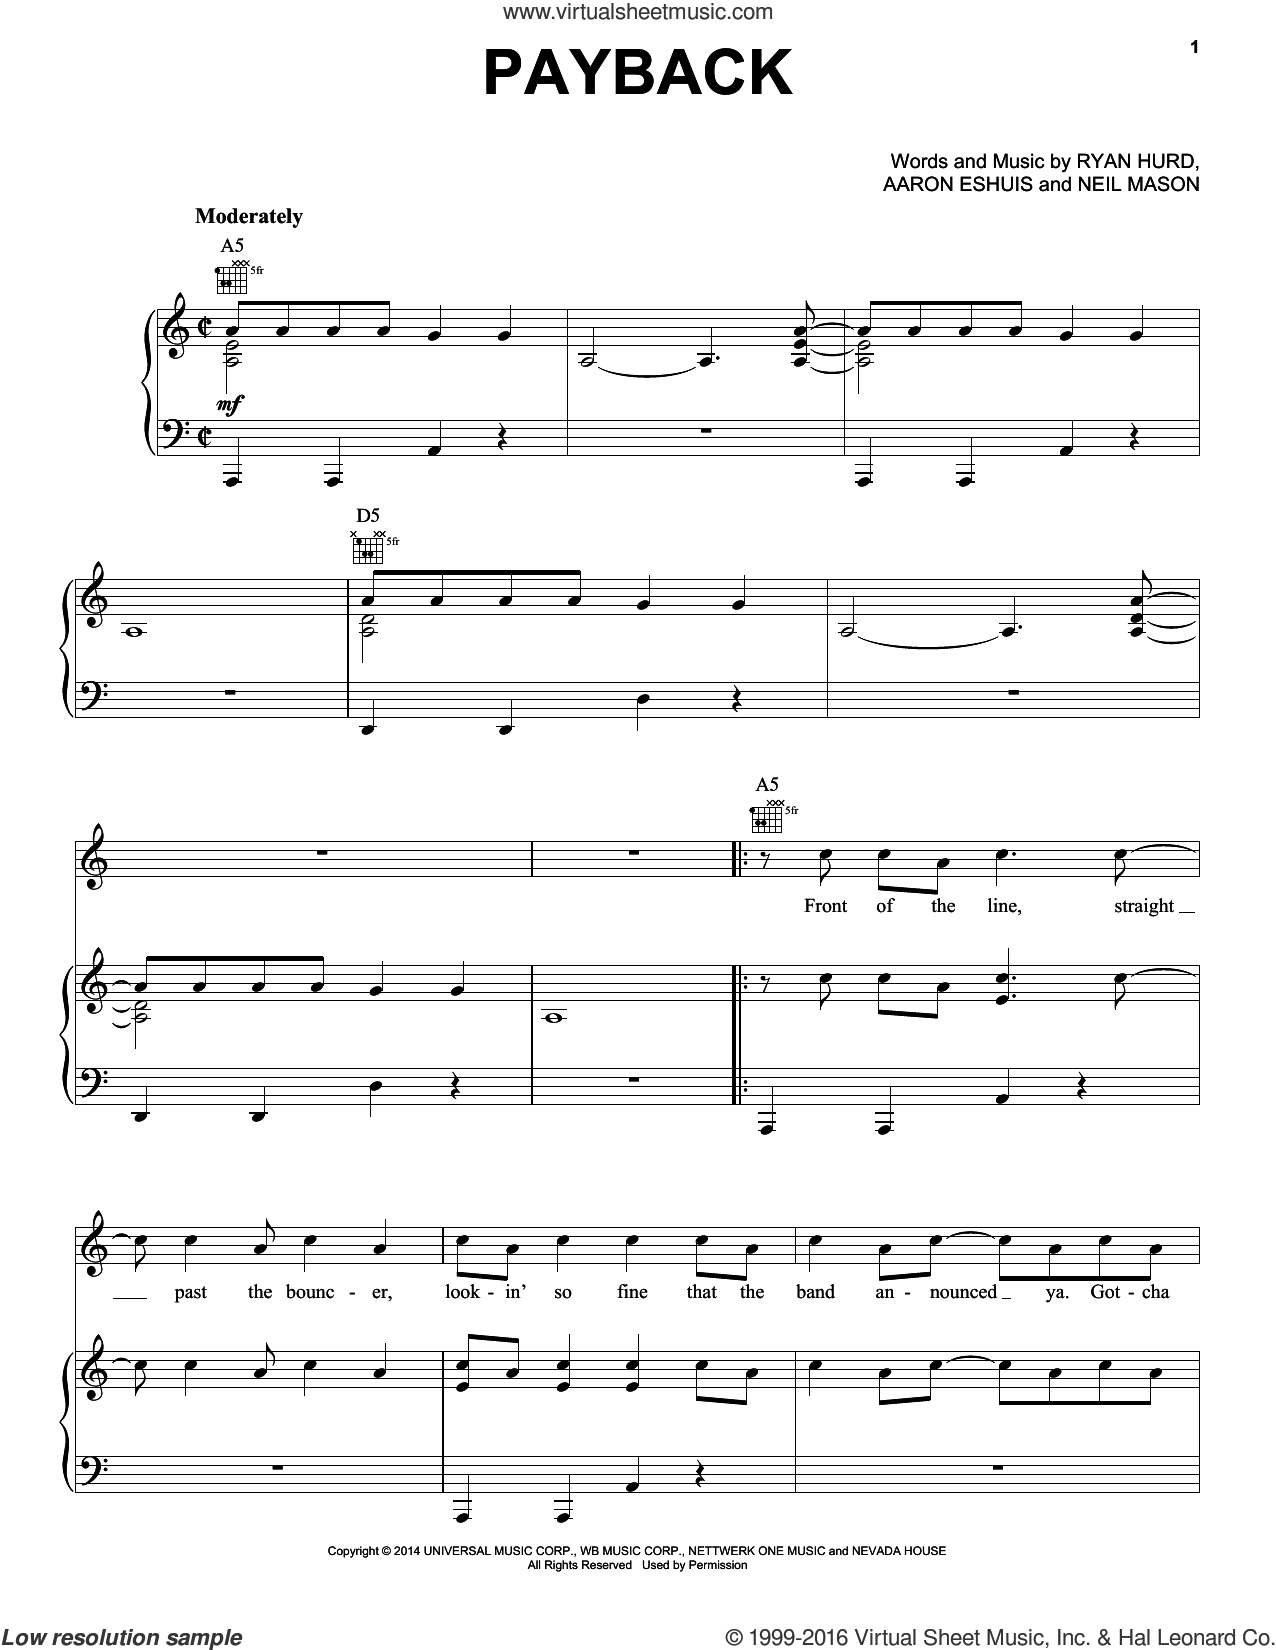 Payback sheet music for voice, piano or guitar by Rascal Flatts, Aaron Eshuis, Neil Mason and Ryan Hurd, intermediate skill level